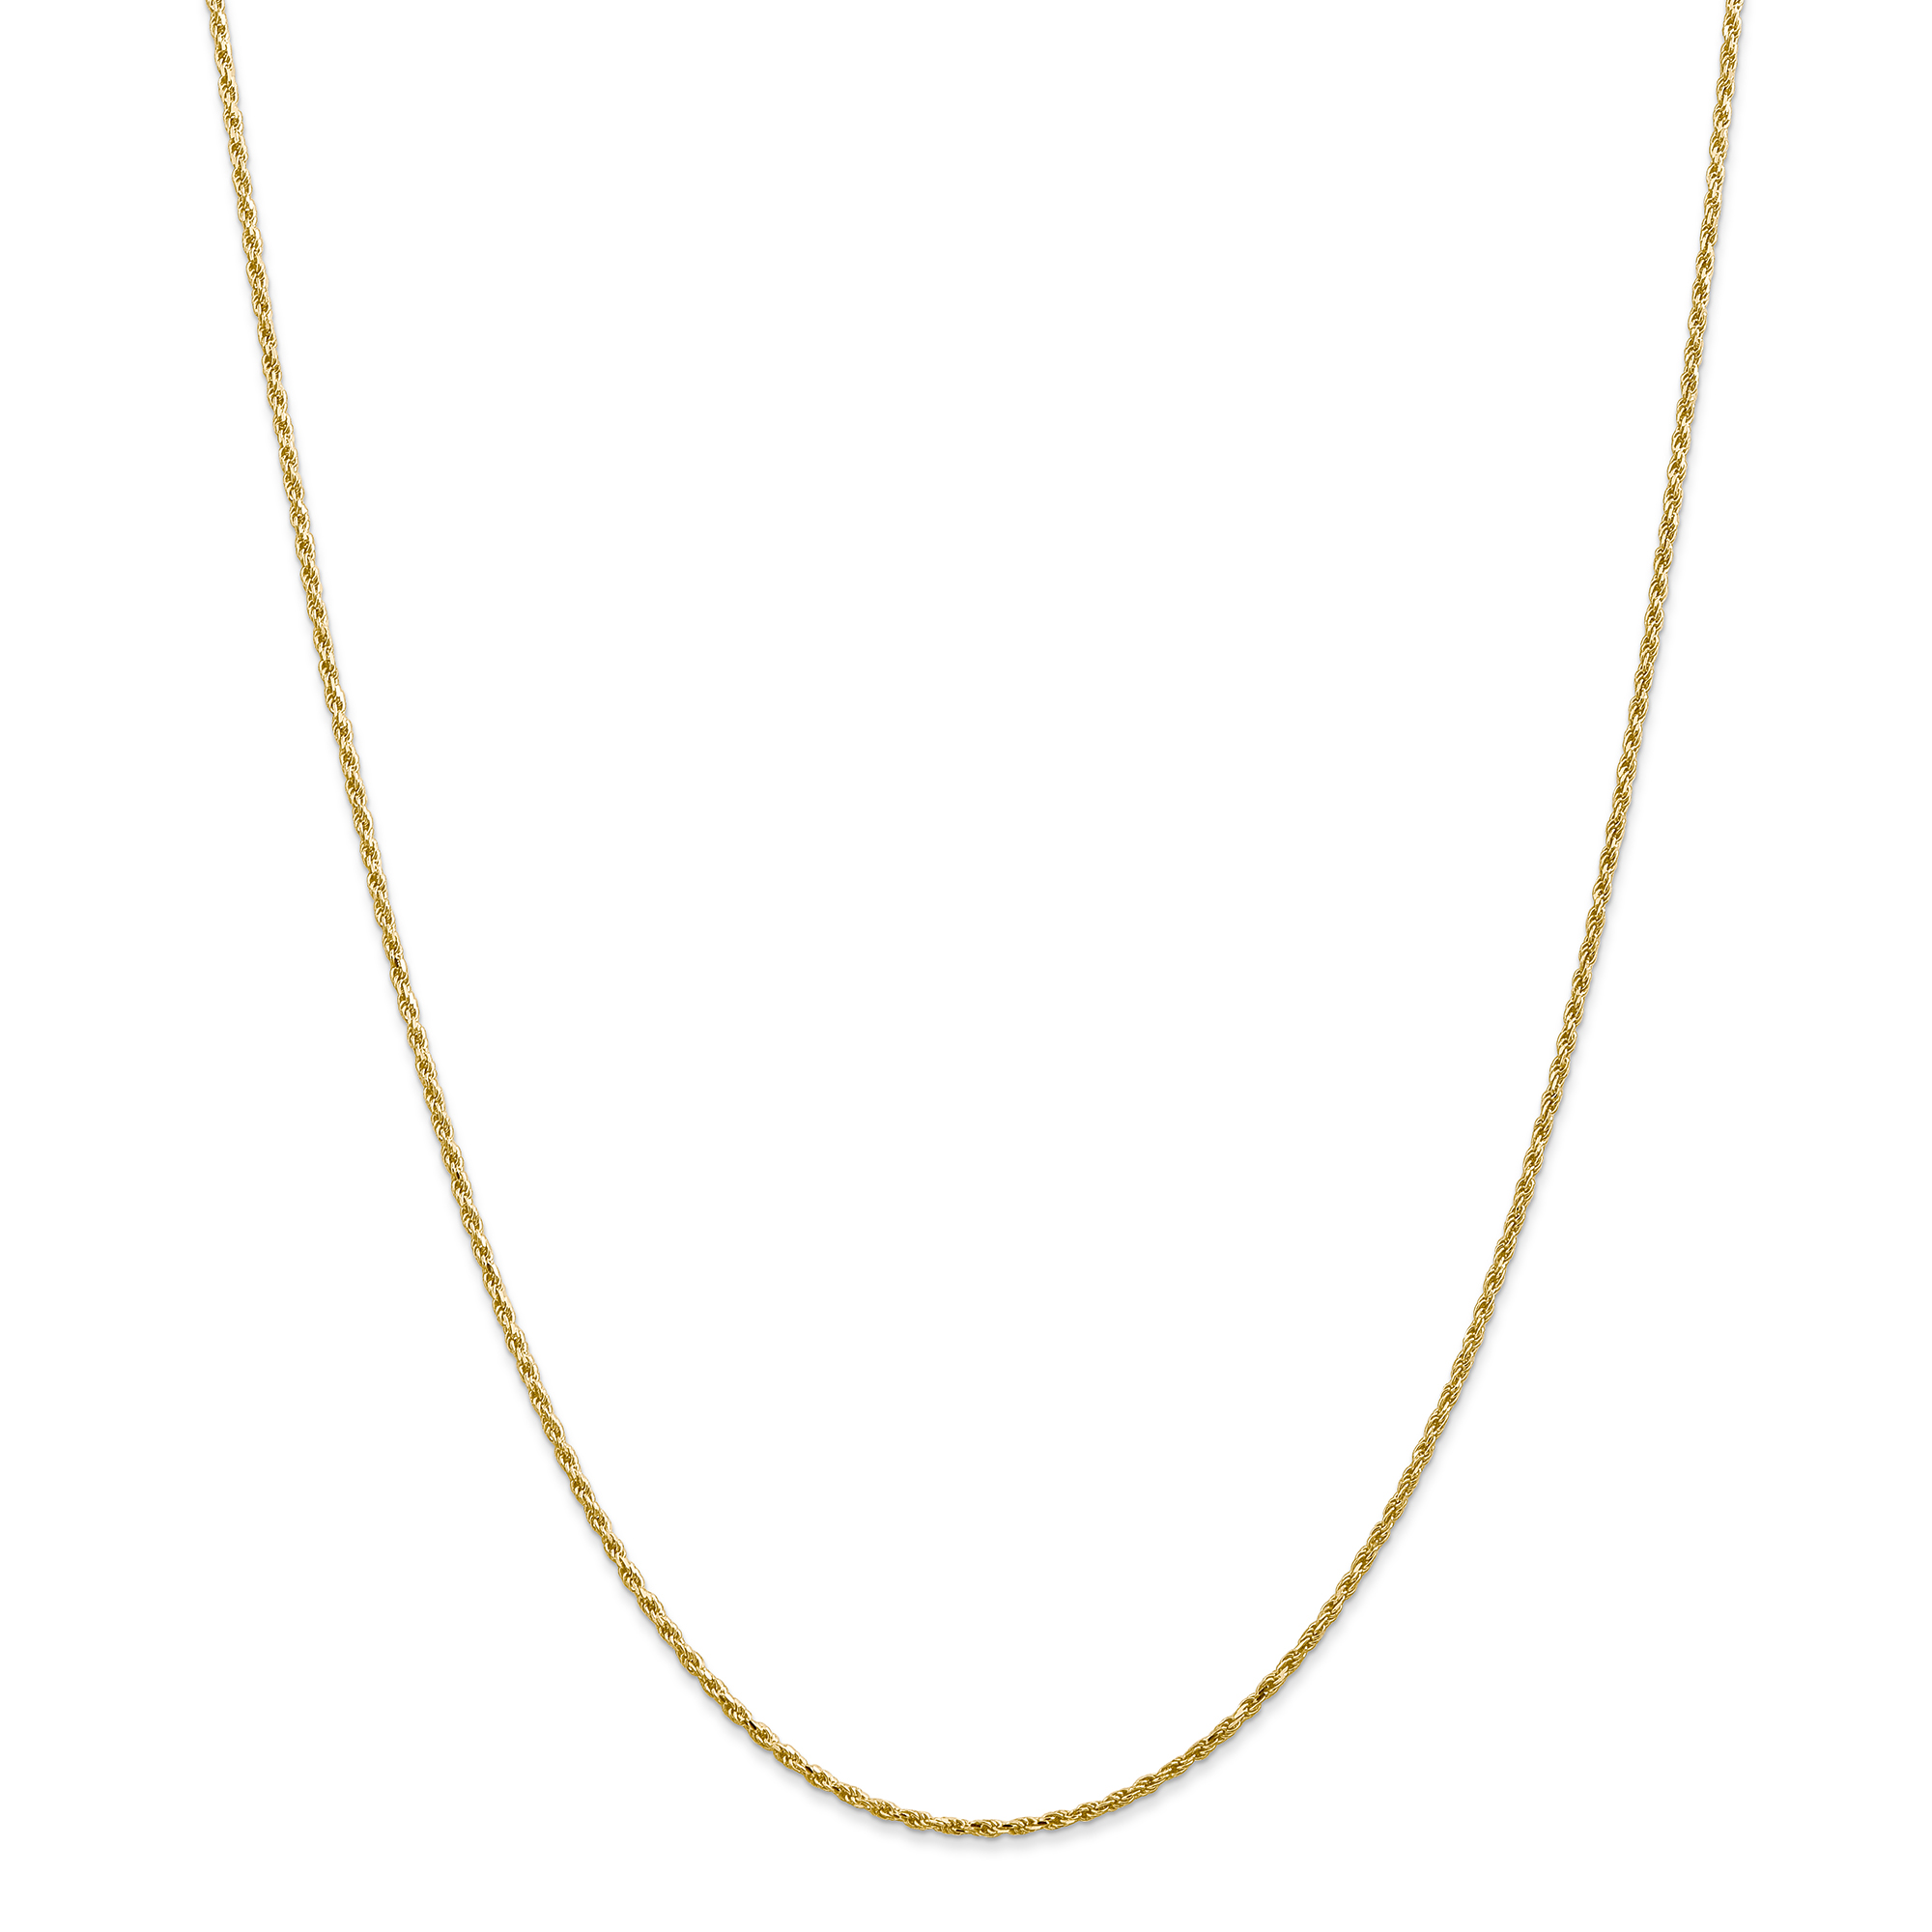 14k Yellow Gold 1.3mm Solid Lobster Link Rope Chain Necklace 24 Inch Pendant Charm Machine Made Fine Jewelry Gifts For Women For Her - image 5 of 5